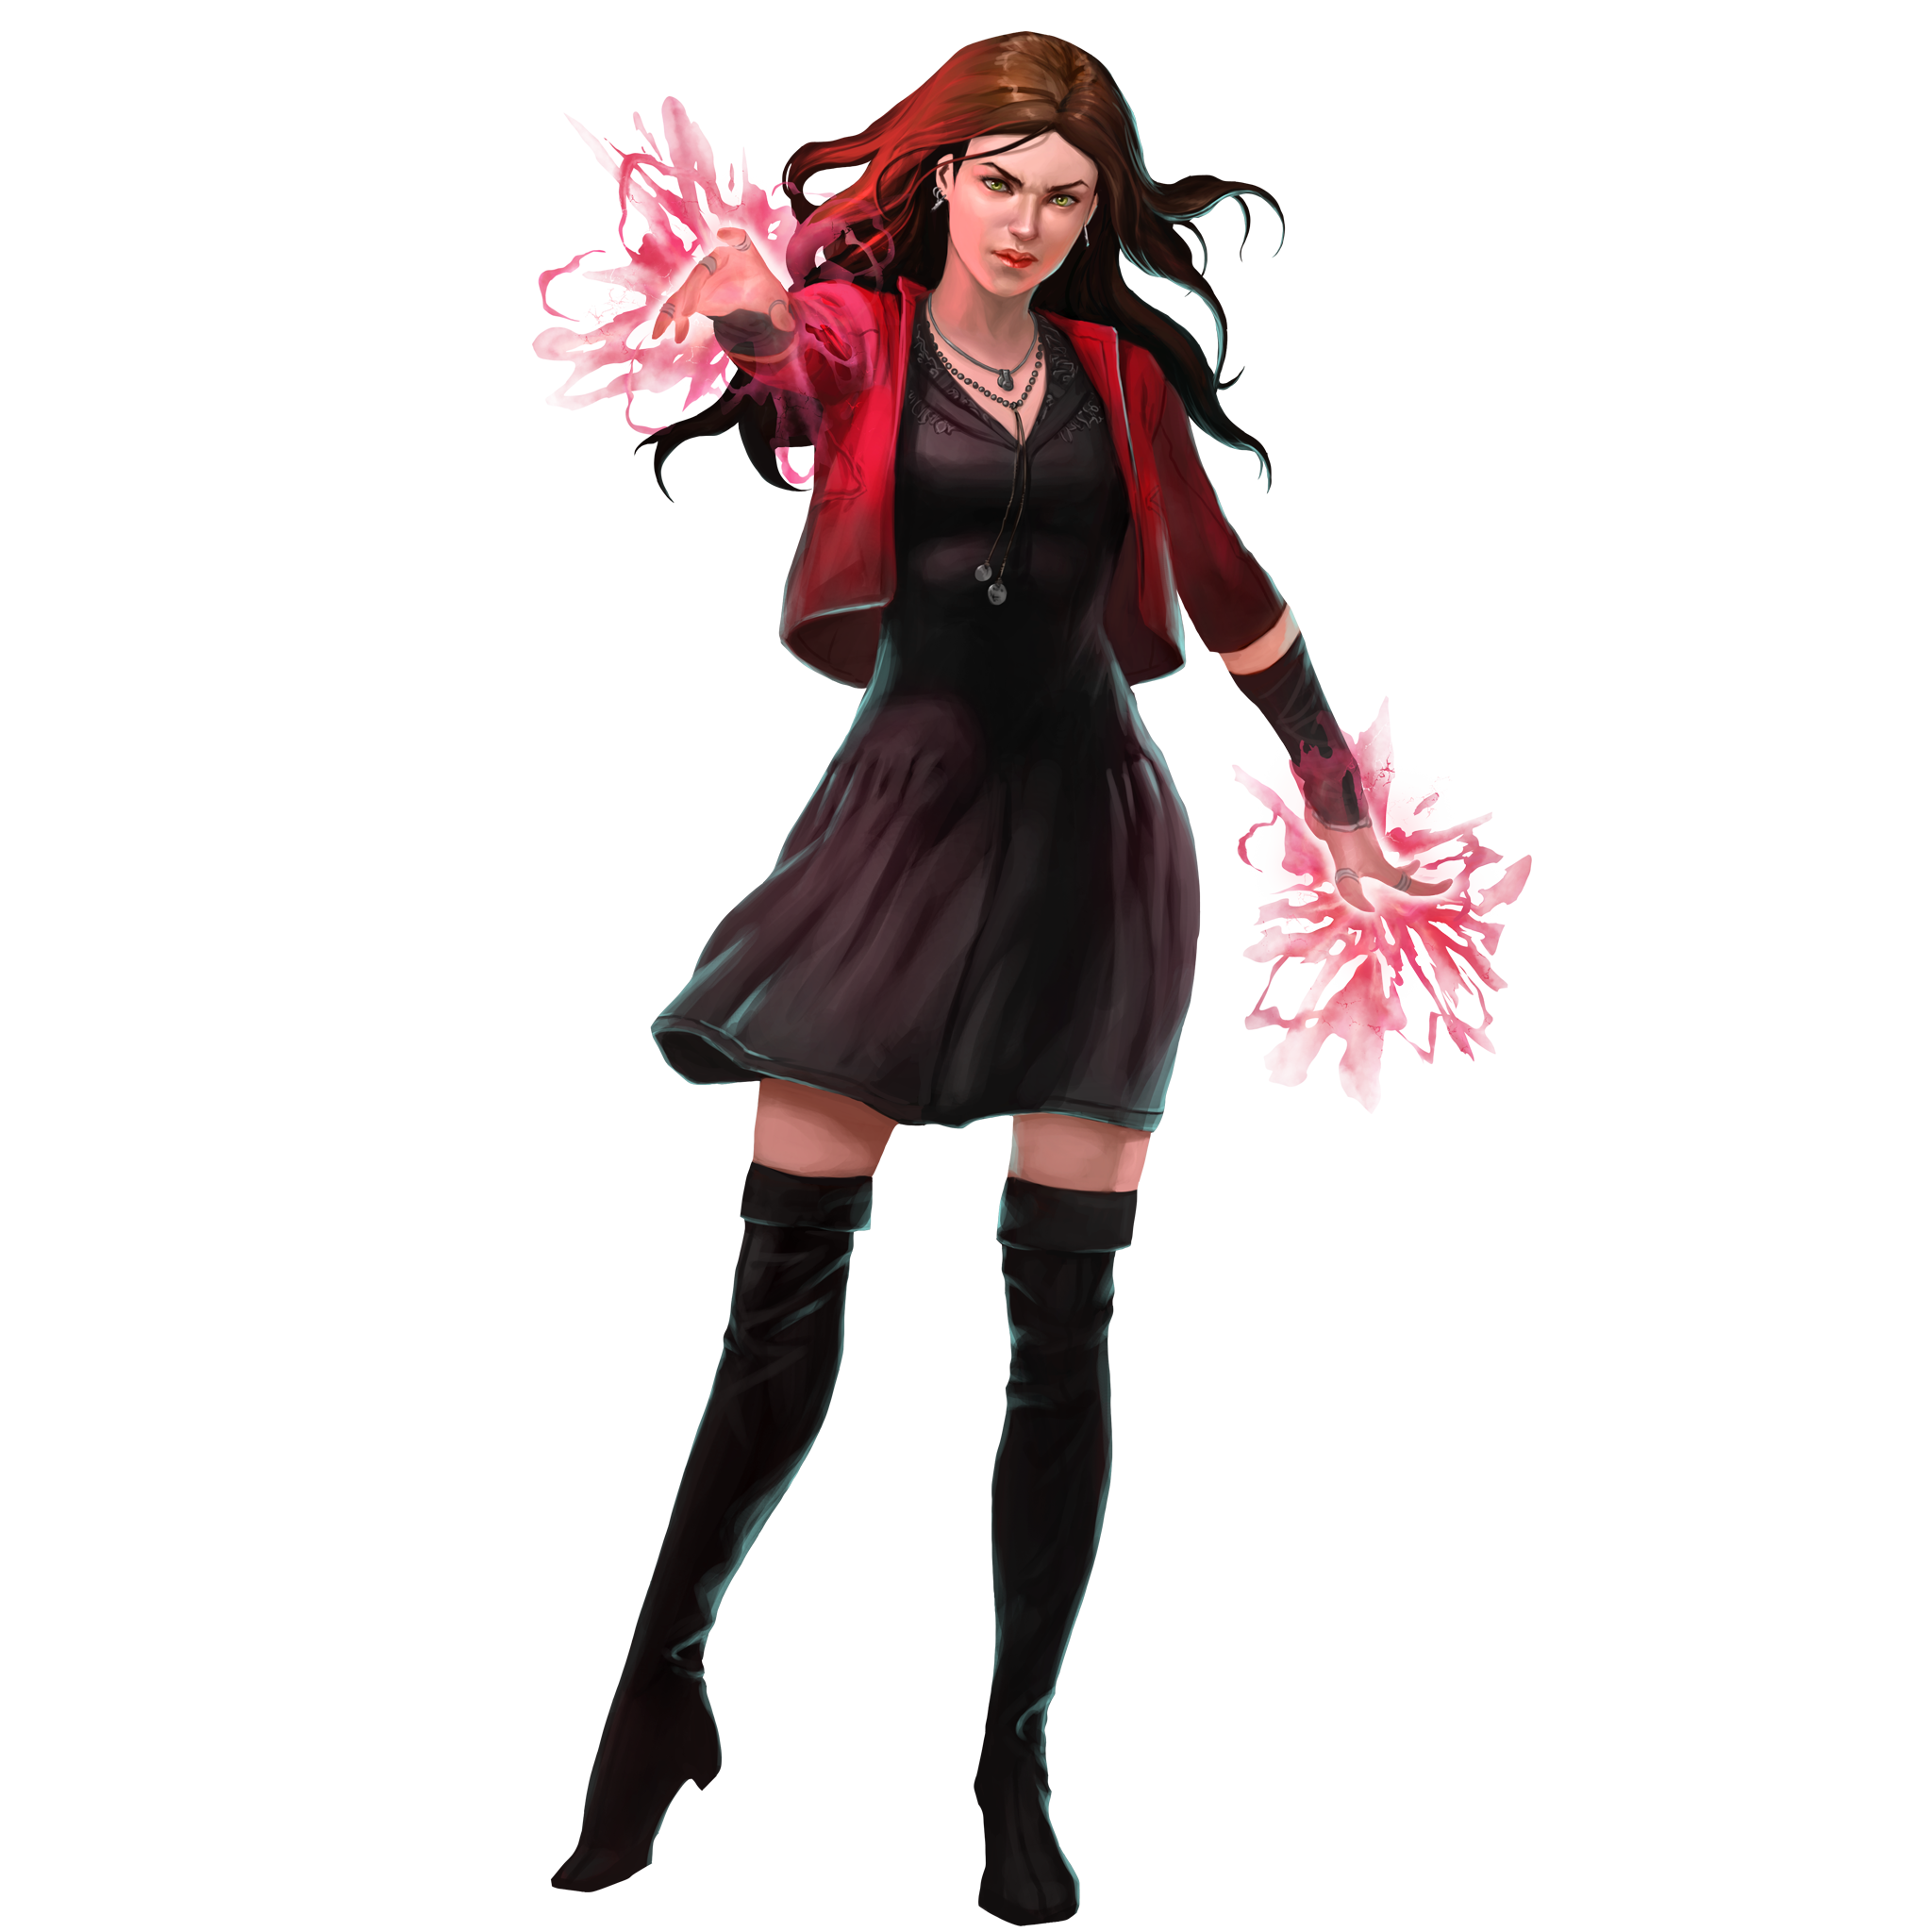 download scarlet witch png clipart hq png image freepngimg clip art alligators and crocodiles clip art alligators and crocodiles